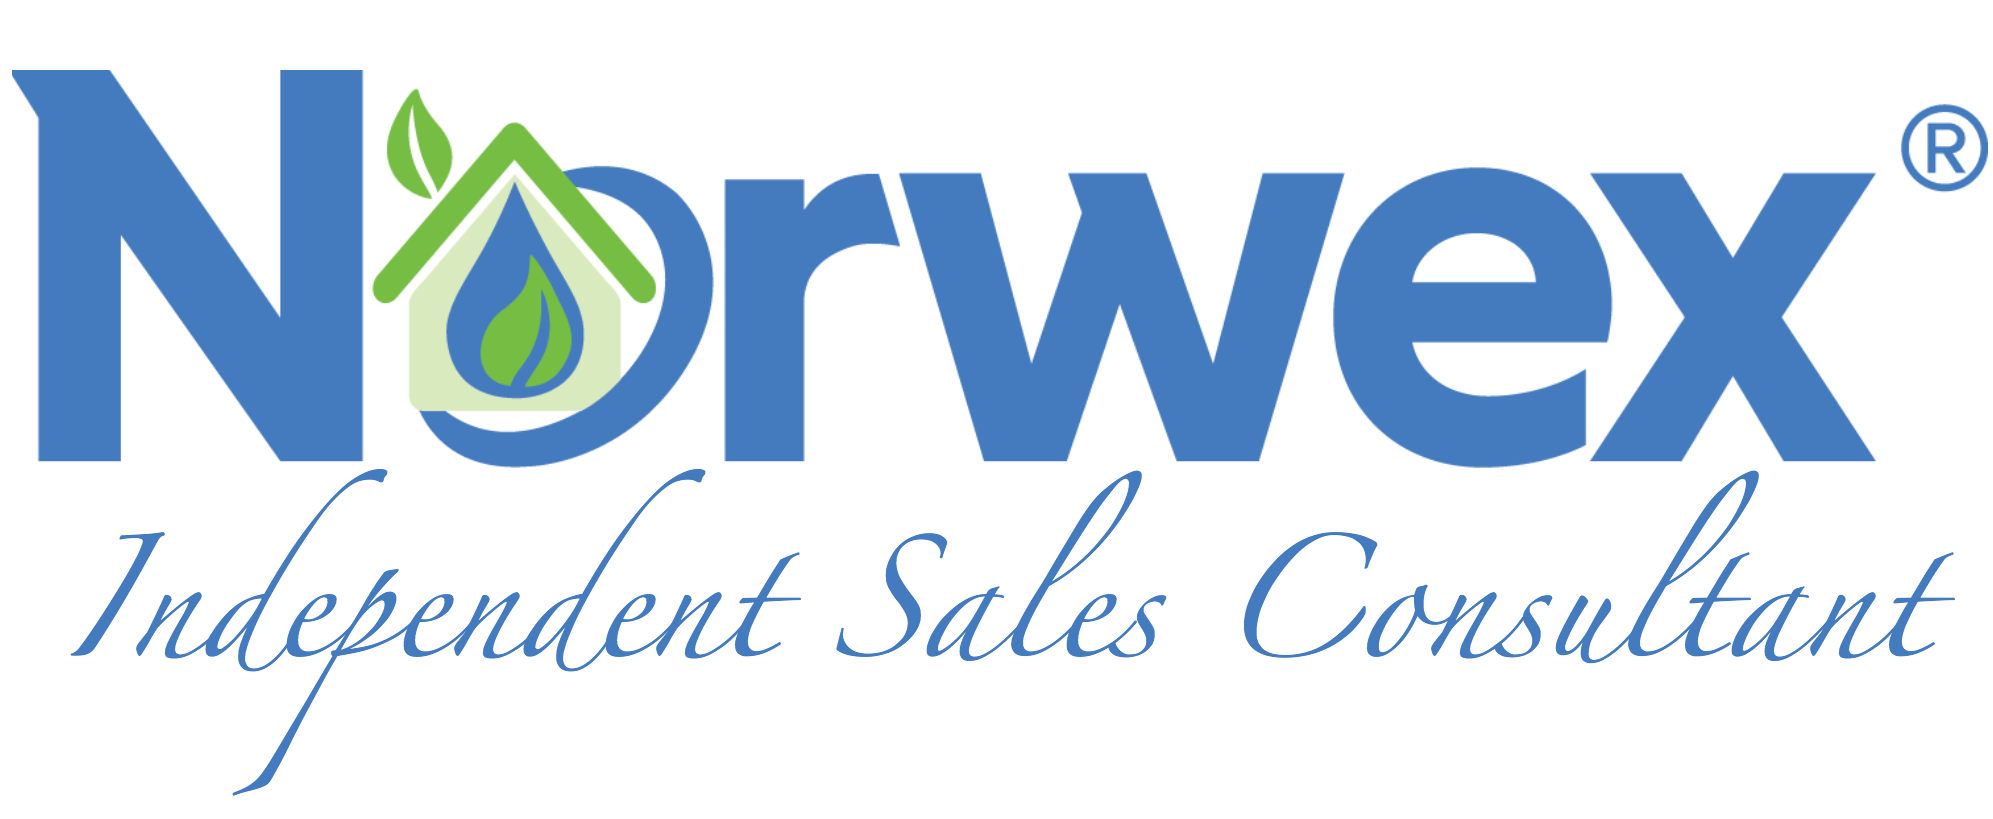 Norwex Logo Png (106+ images in Collection) Page 3.